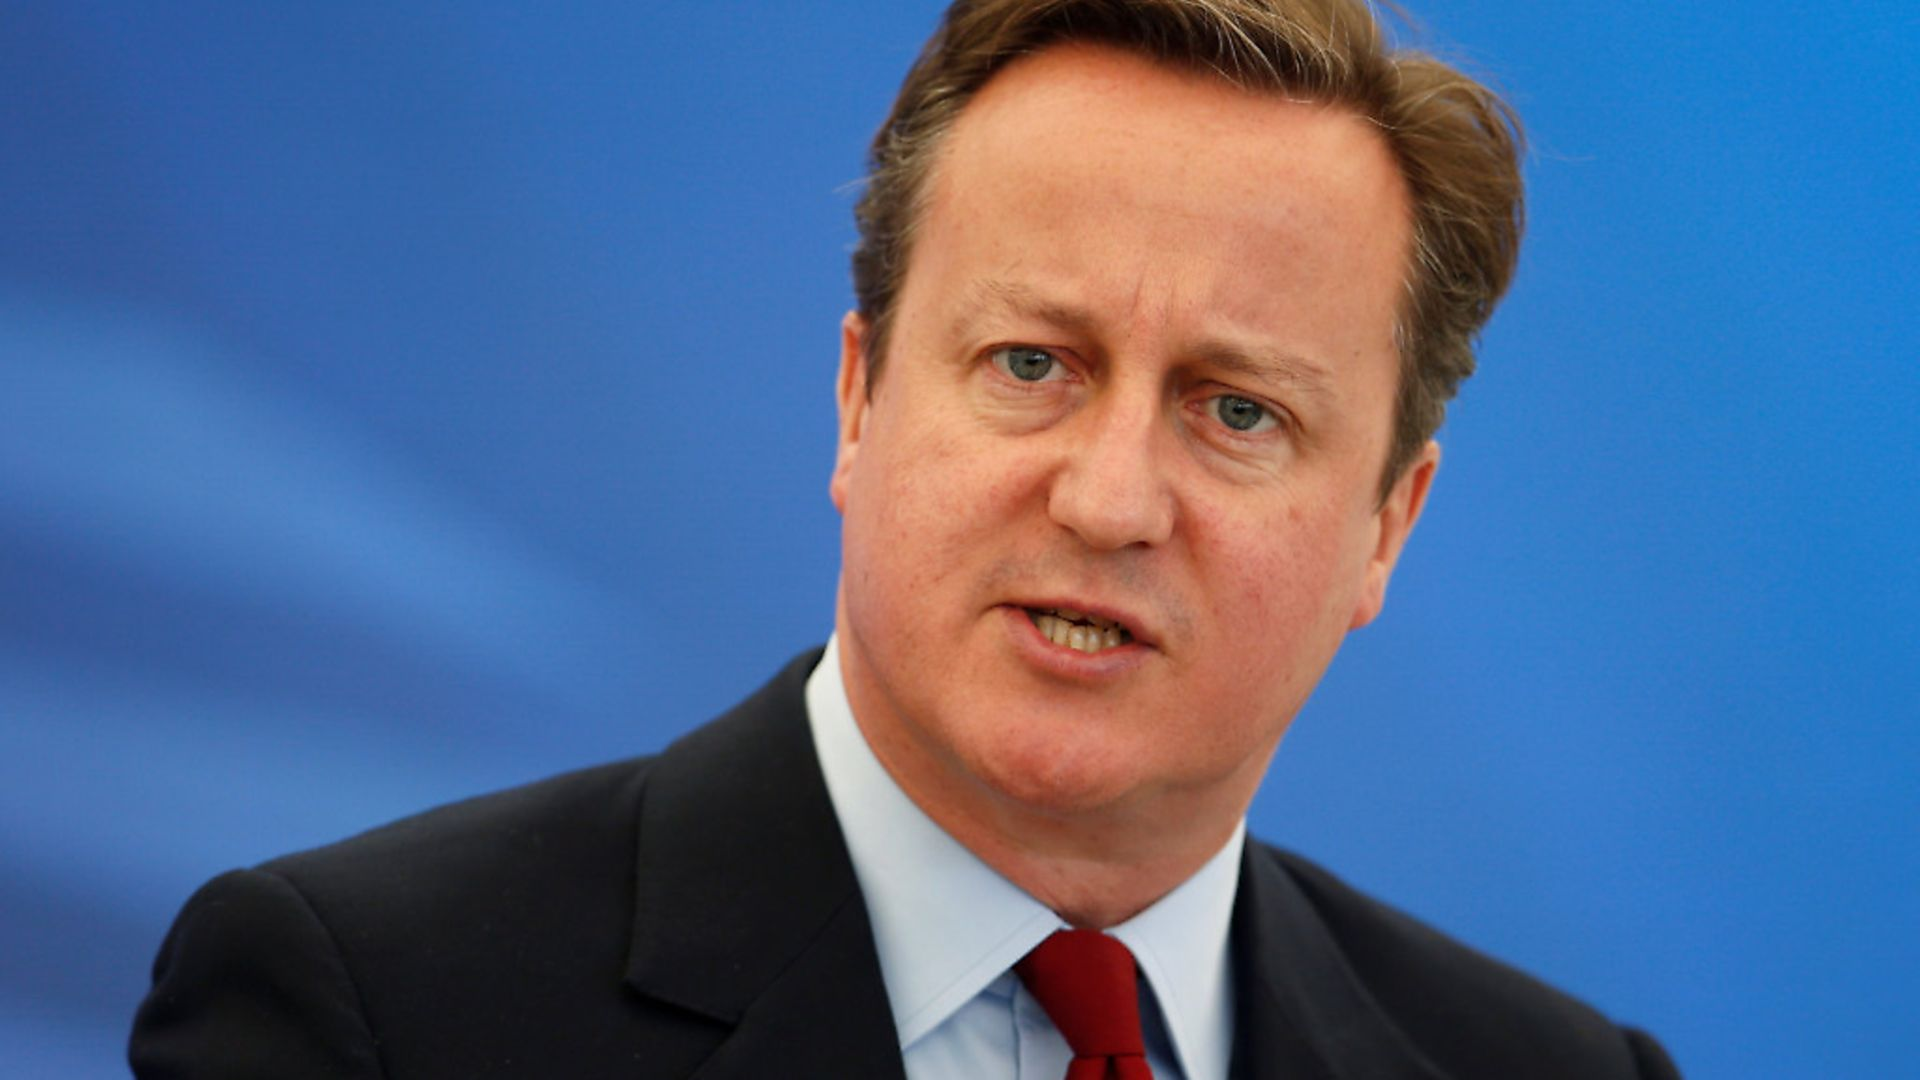 Former British prime minister David Cameron. Picture: Peter Nicholls - WPA Pool /Getty Images - Credit: Getty Images